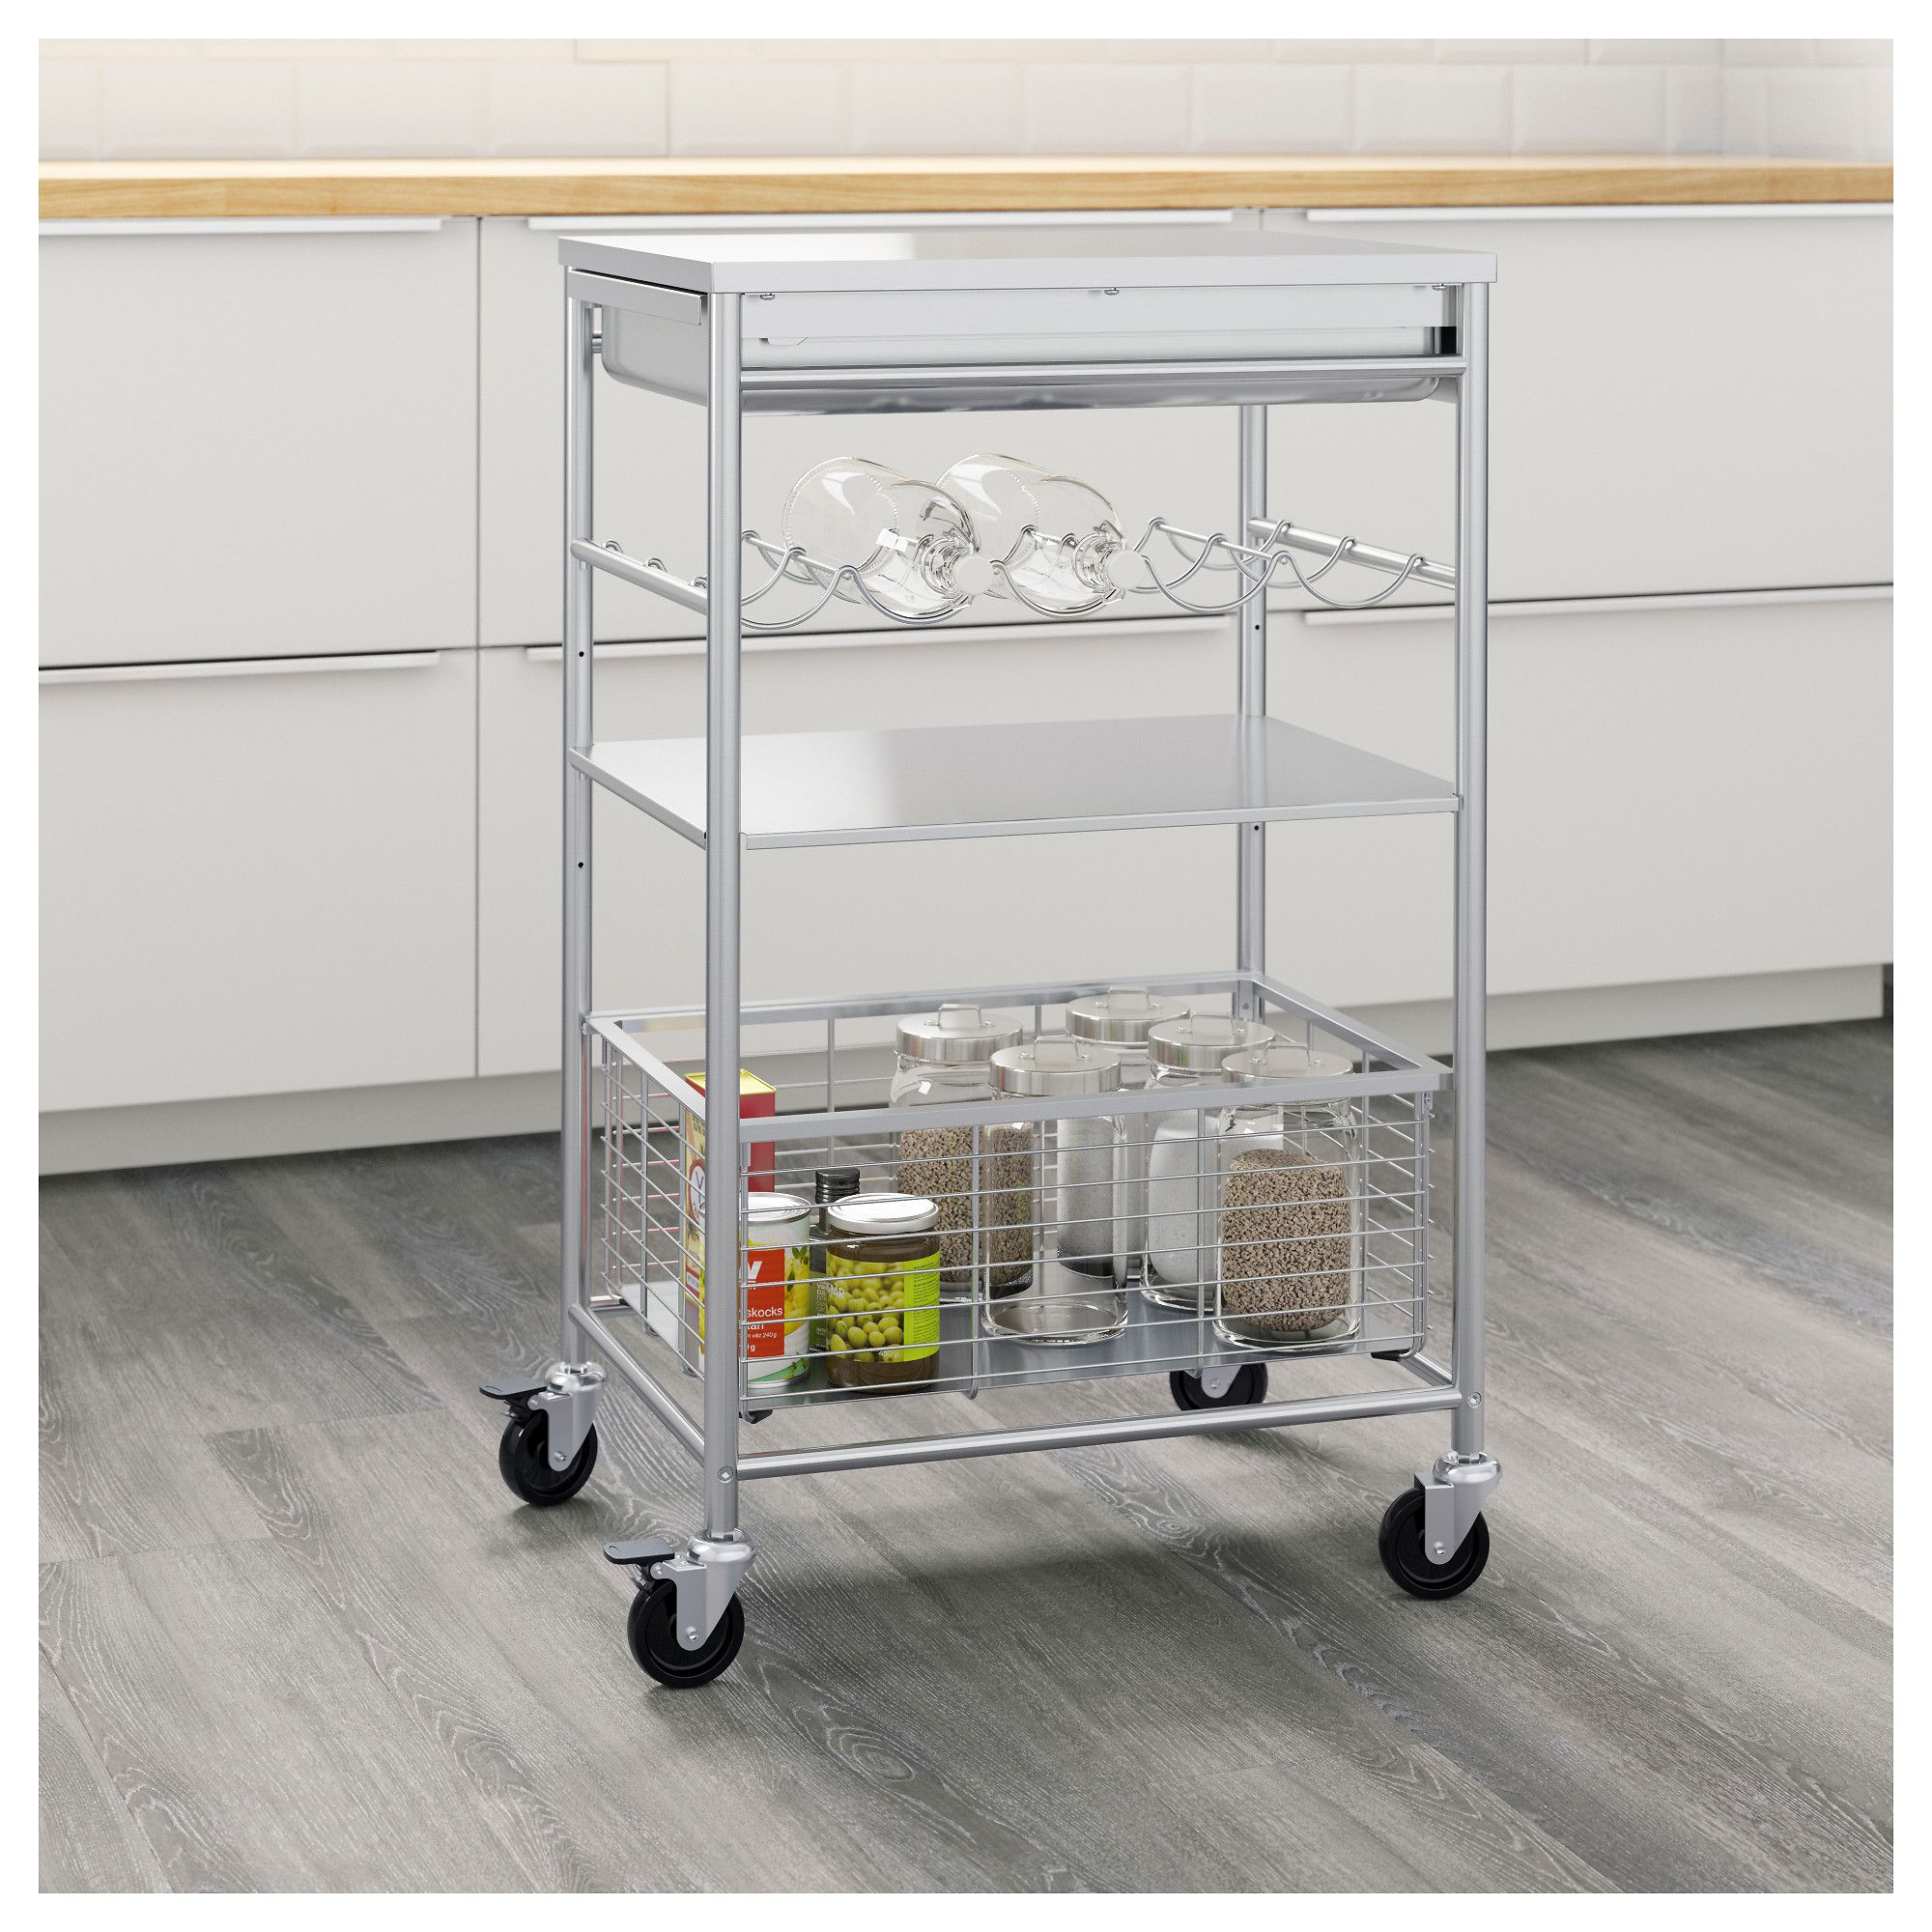 Ikea Küche Grundtal Ikea Grundtal Kitchen Cart Gives You Extra Storage In Your